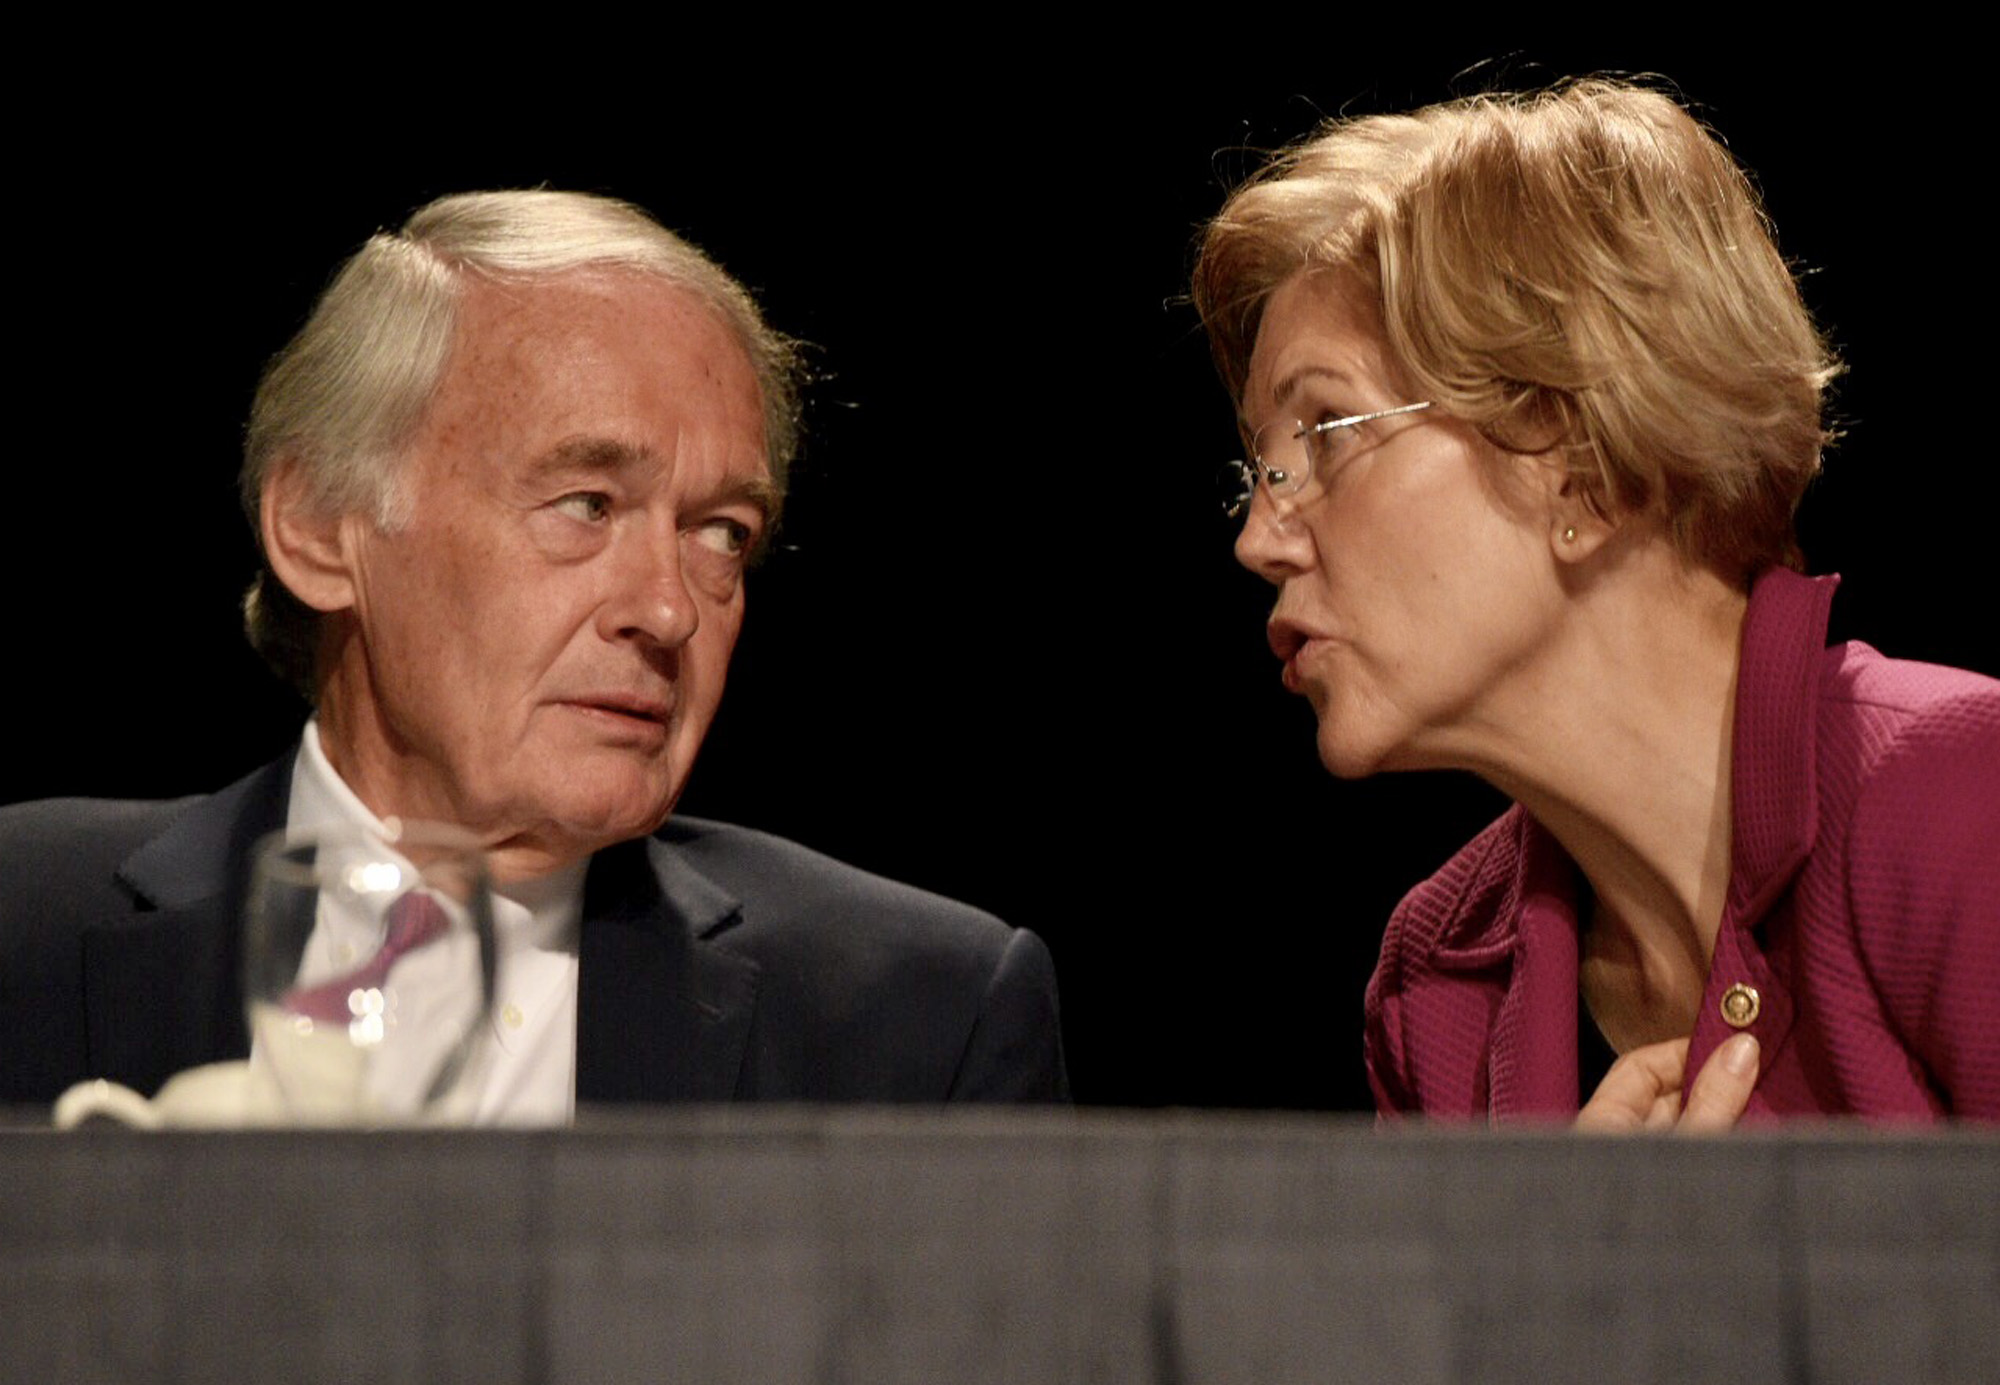 Warren, Markey vow 'work is not done' after Senate approves Biden's $1.9T coronavirus aid plan